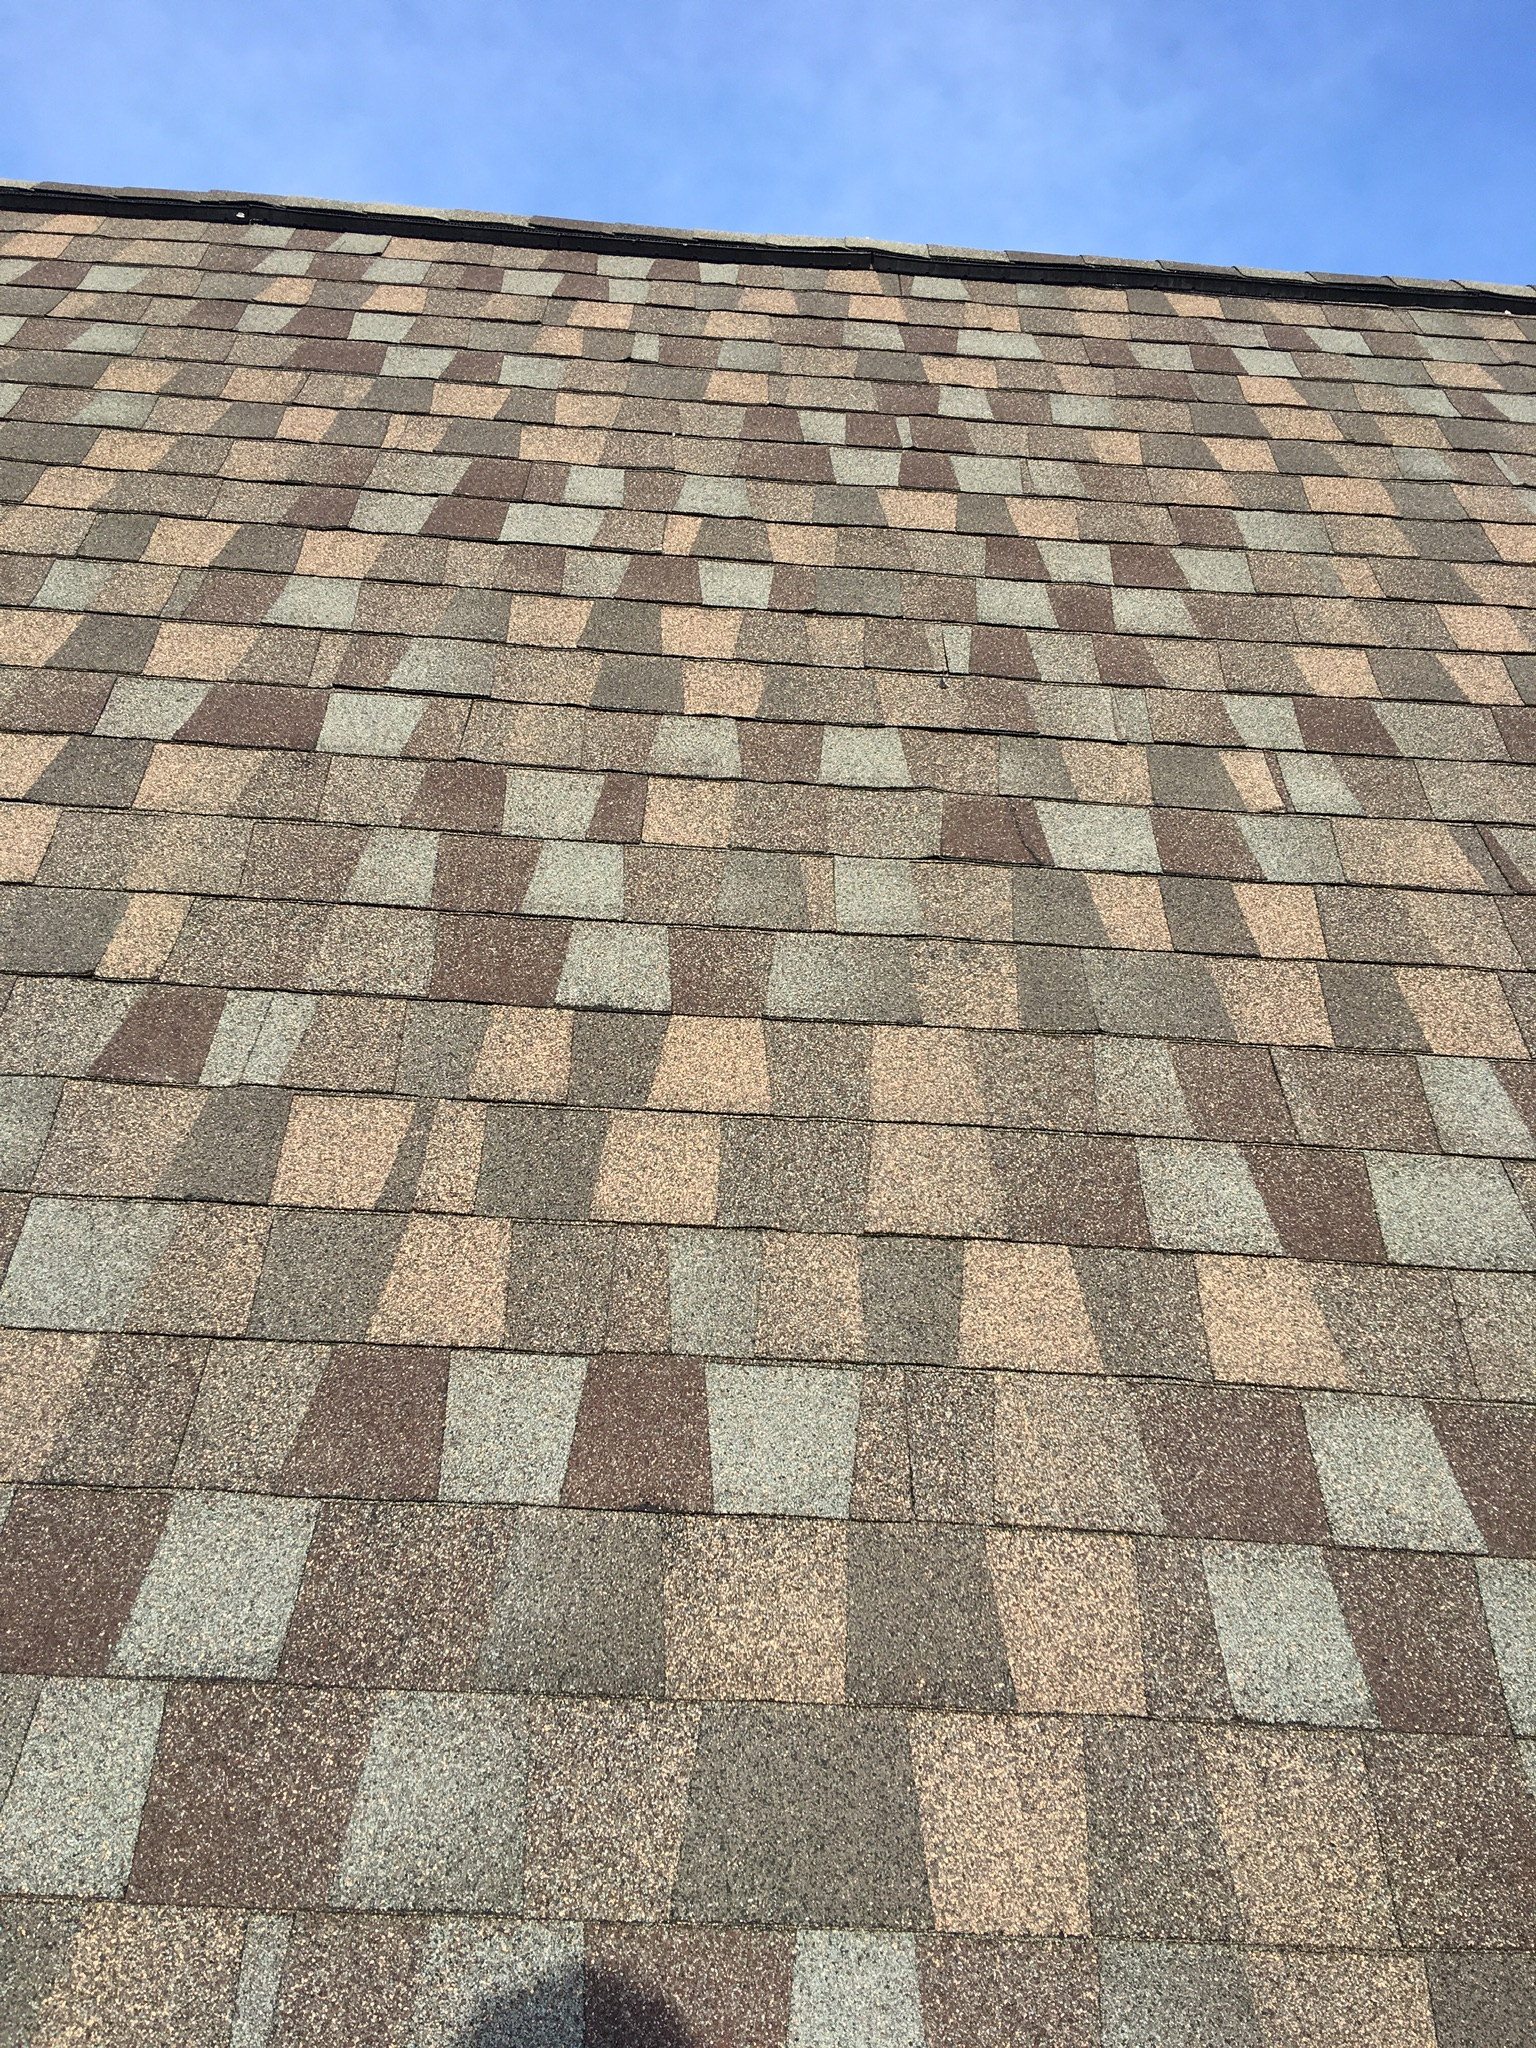 This is the GAF American Harvest shingle installed on the roof.